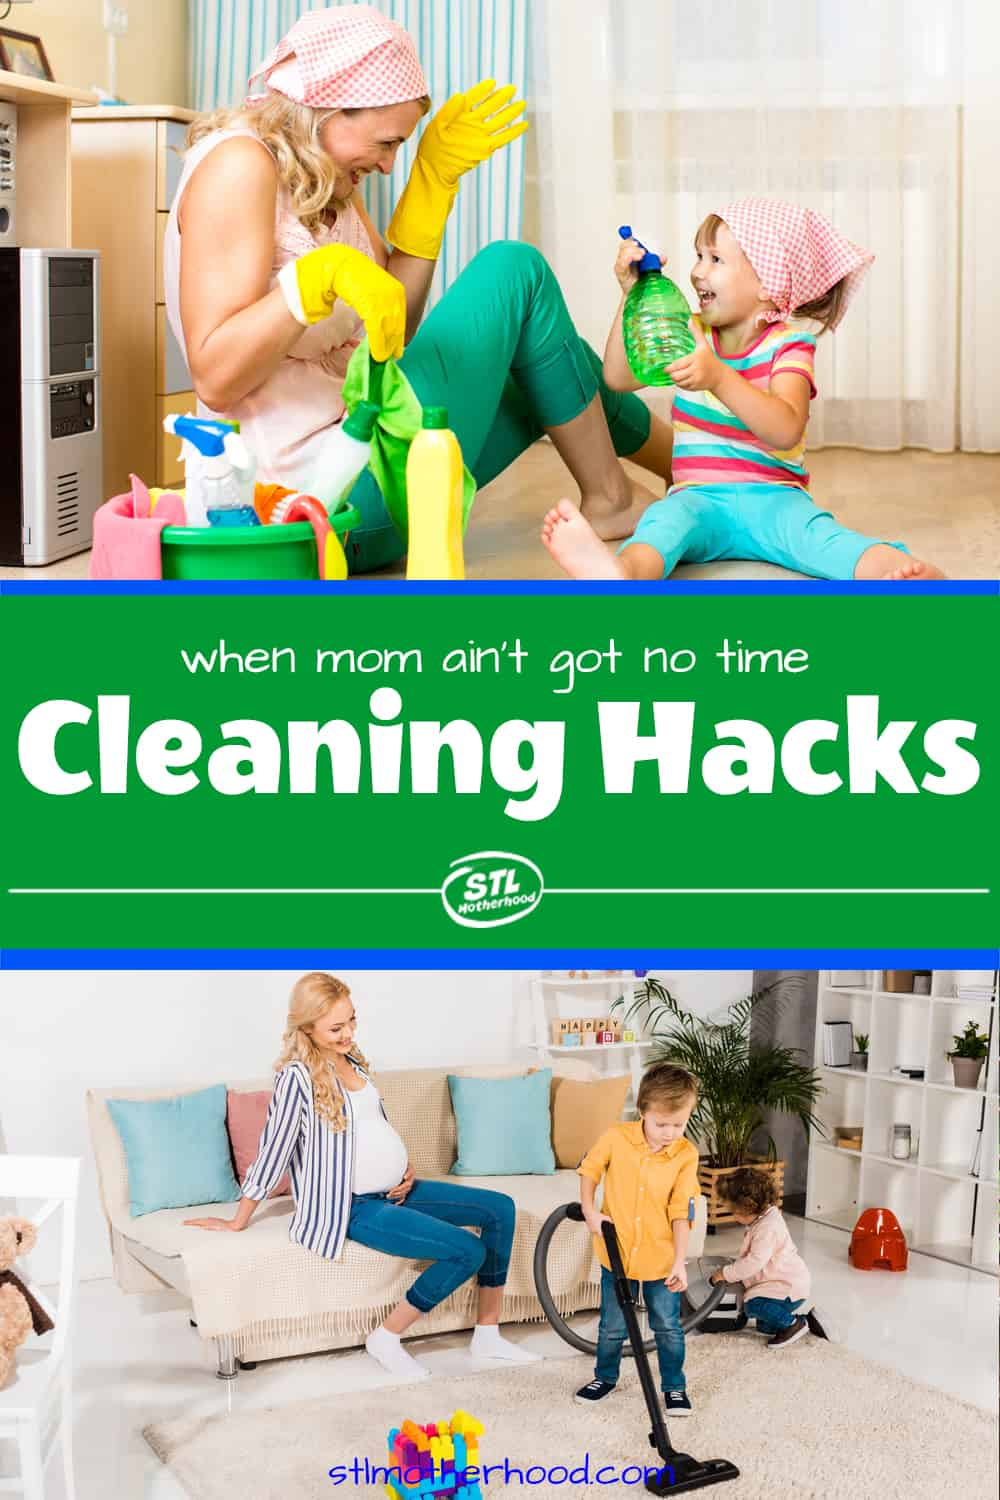 moms cleaning with kids